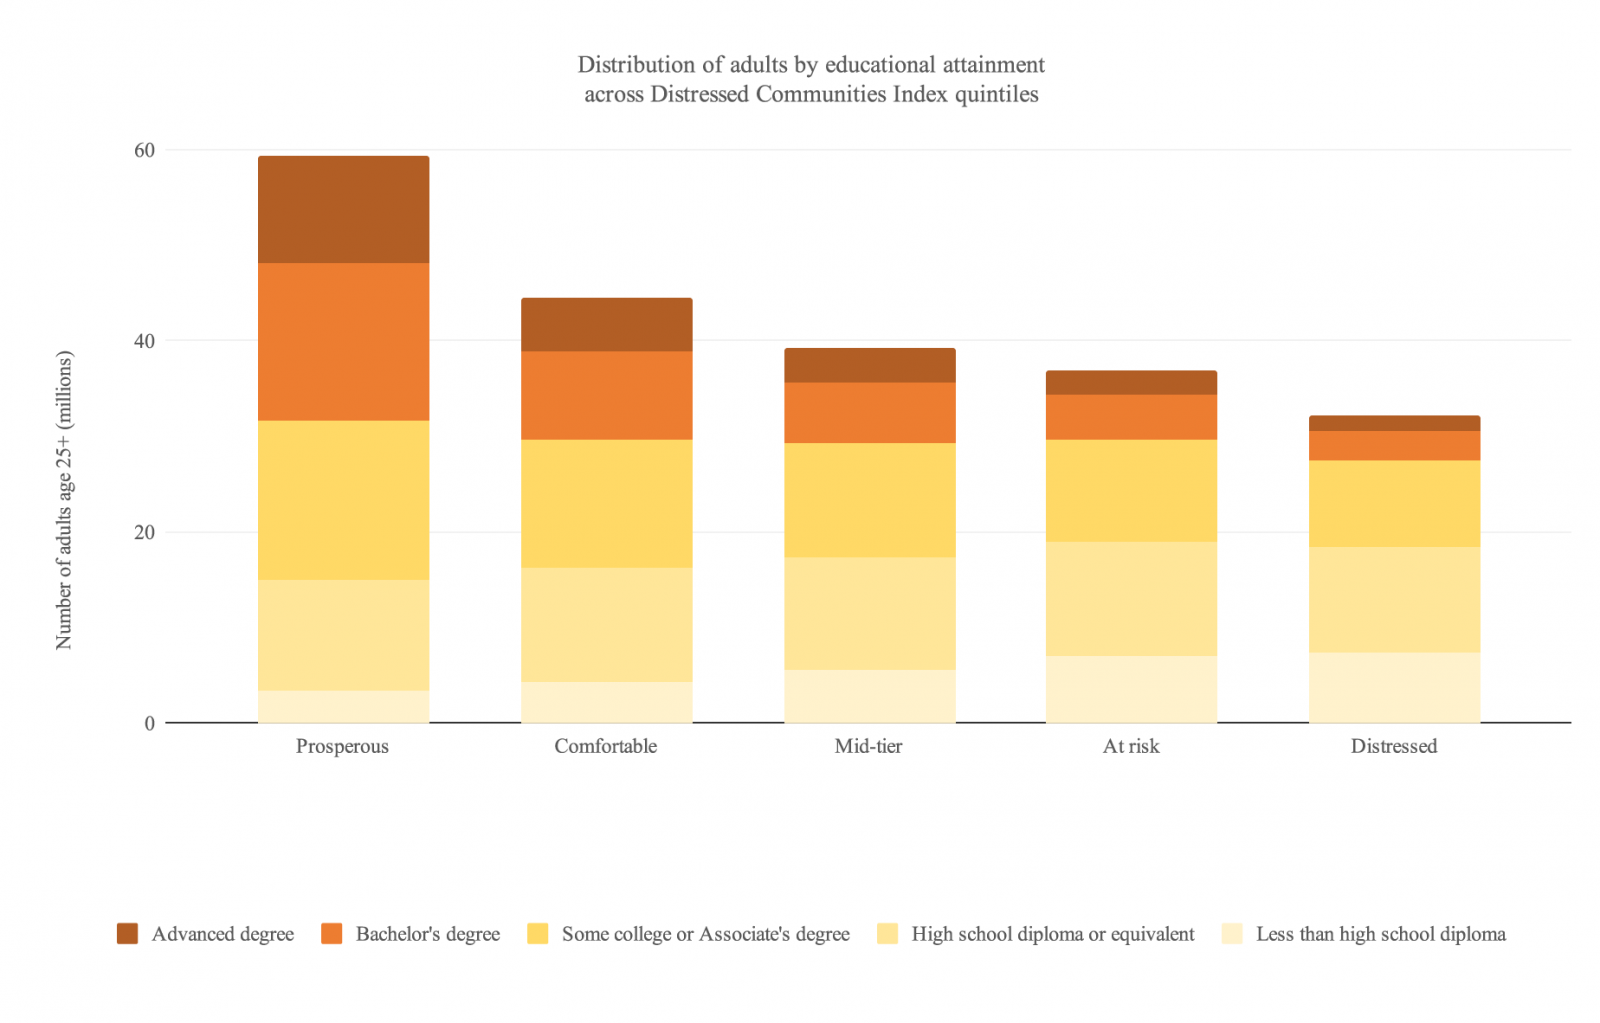 Bar graph of distribution of adults by educational attainment across Distressed Communities Index quintiles with number of adults aged 25+ (million) on the y-axis and Distressed Communities Index quintiles on the x-axis. Education levels are indicated by varying shades of yellow/orange.